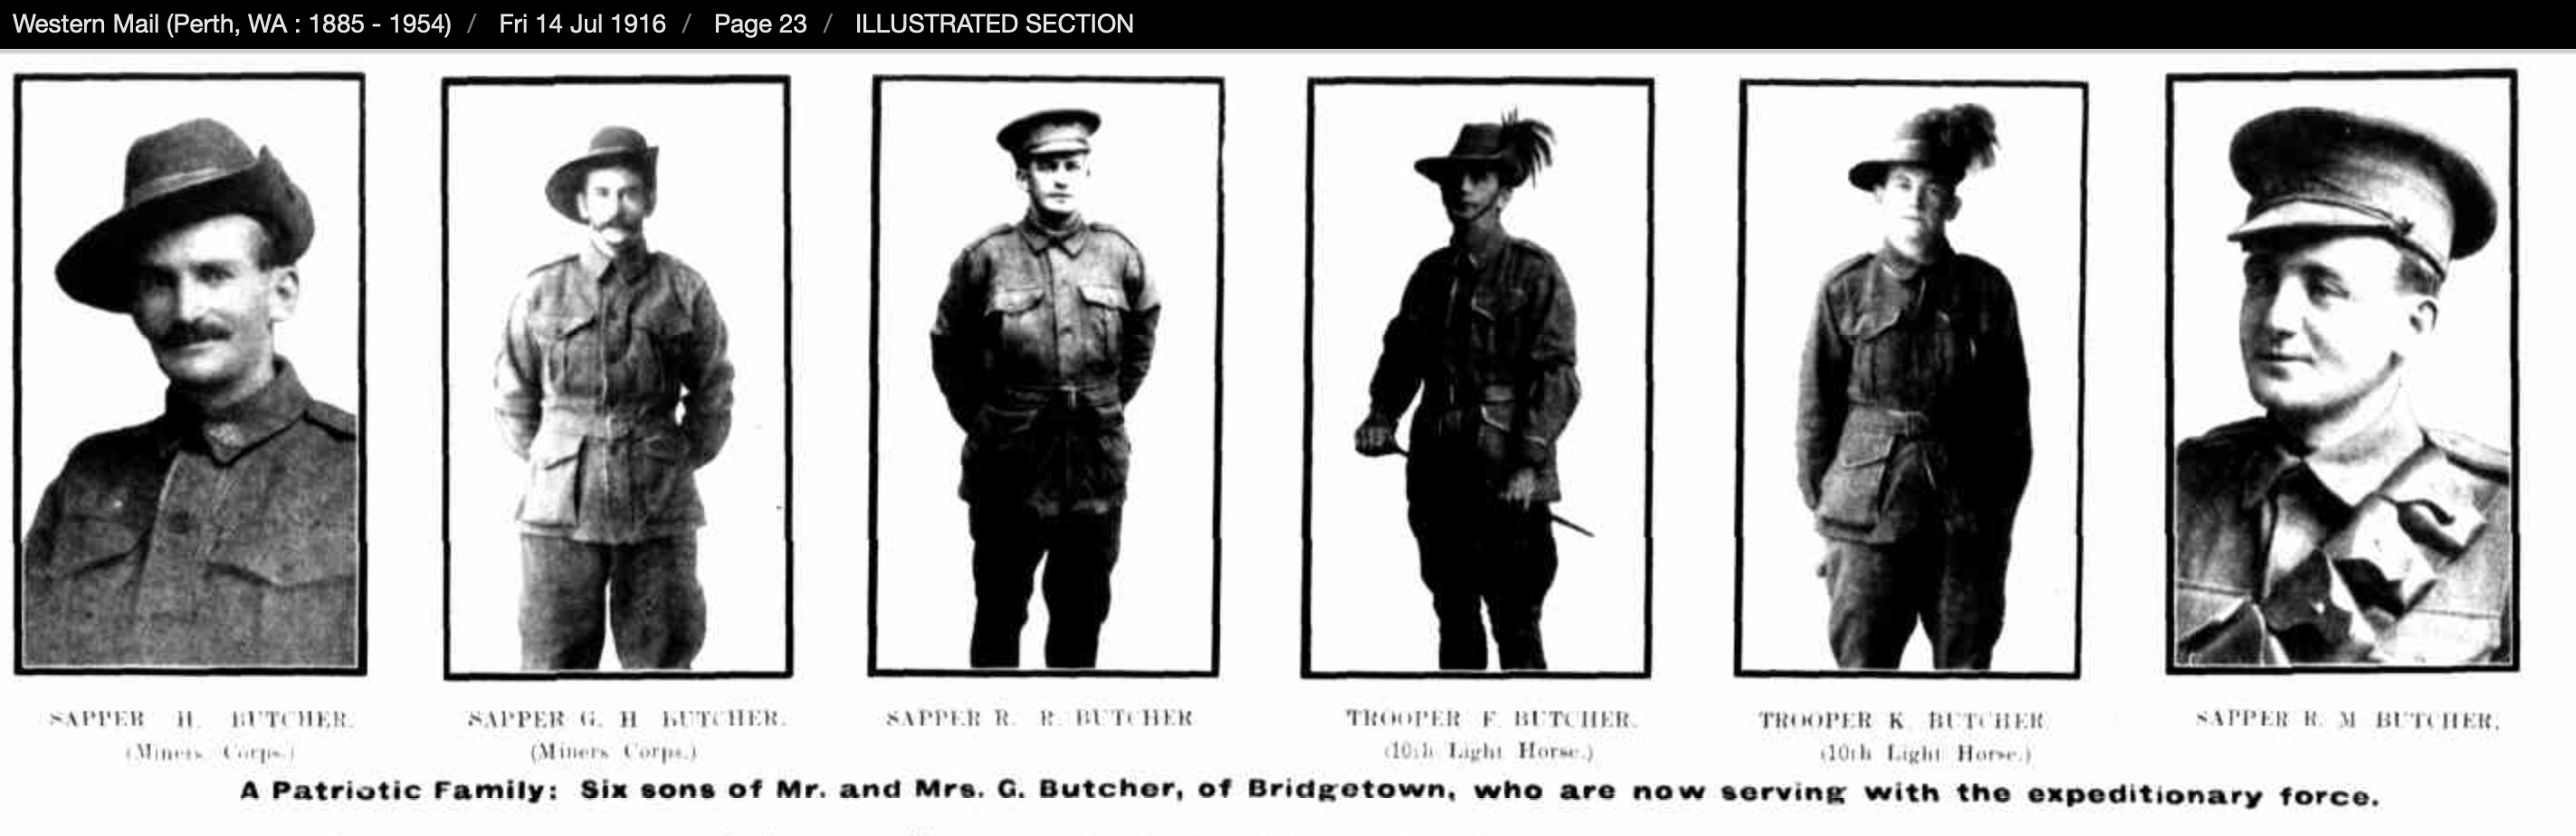 Butcher Western Mail illustrated six sons